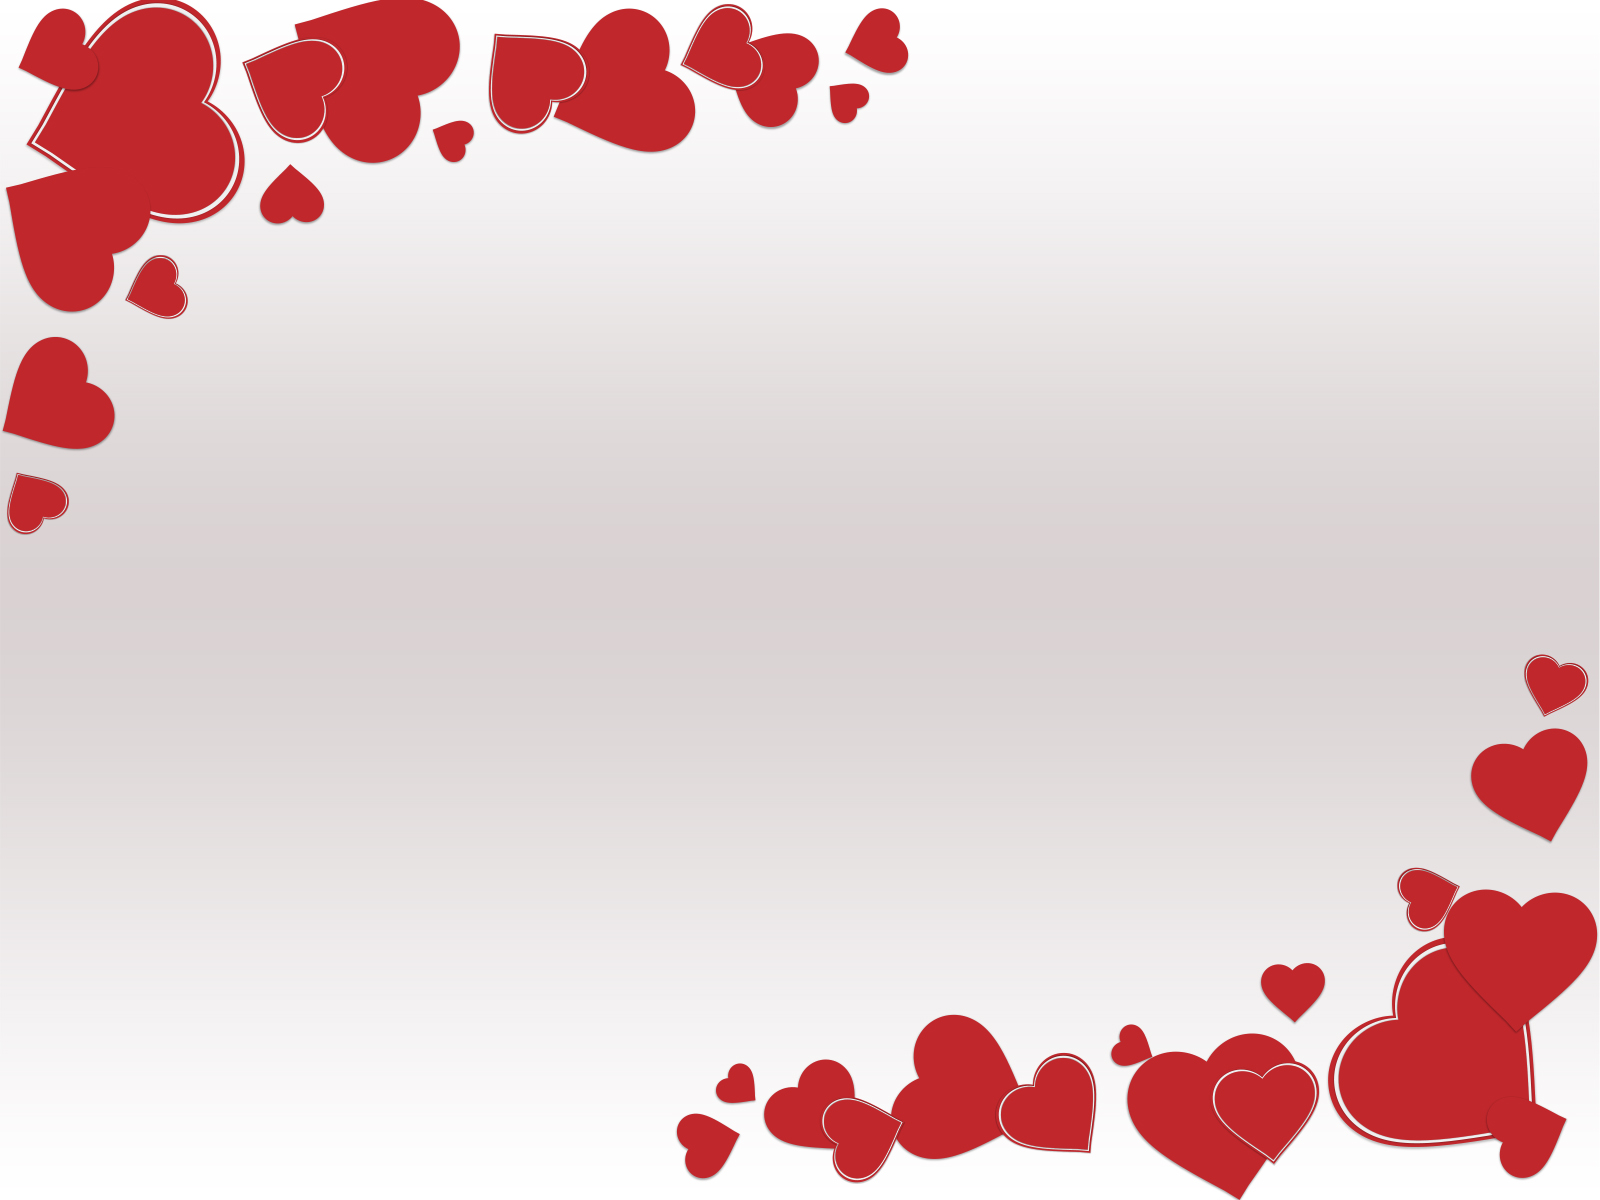 Grunge Valentine Day Backgrounds   Love Red White   PPT 1600x1200